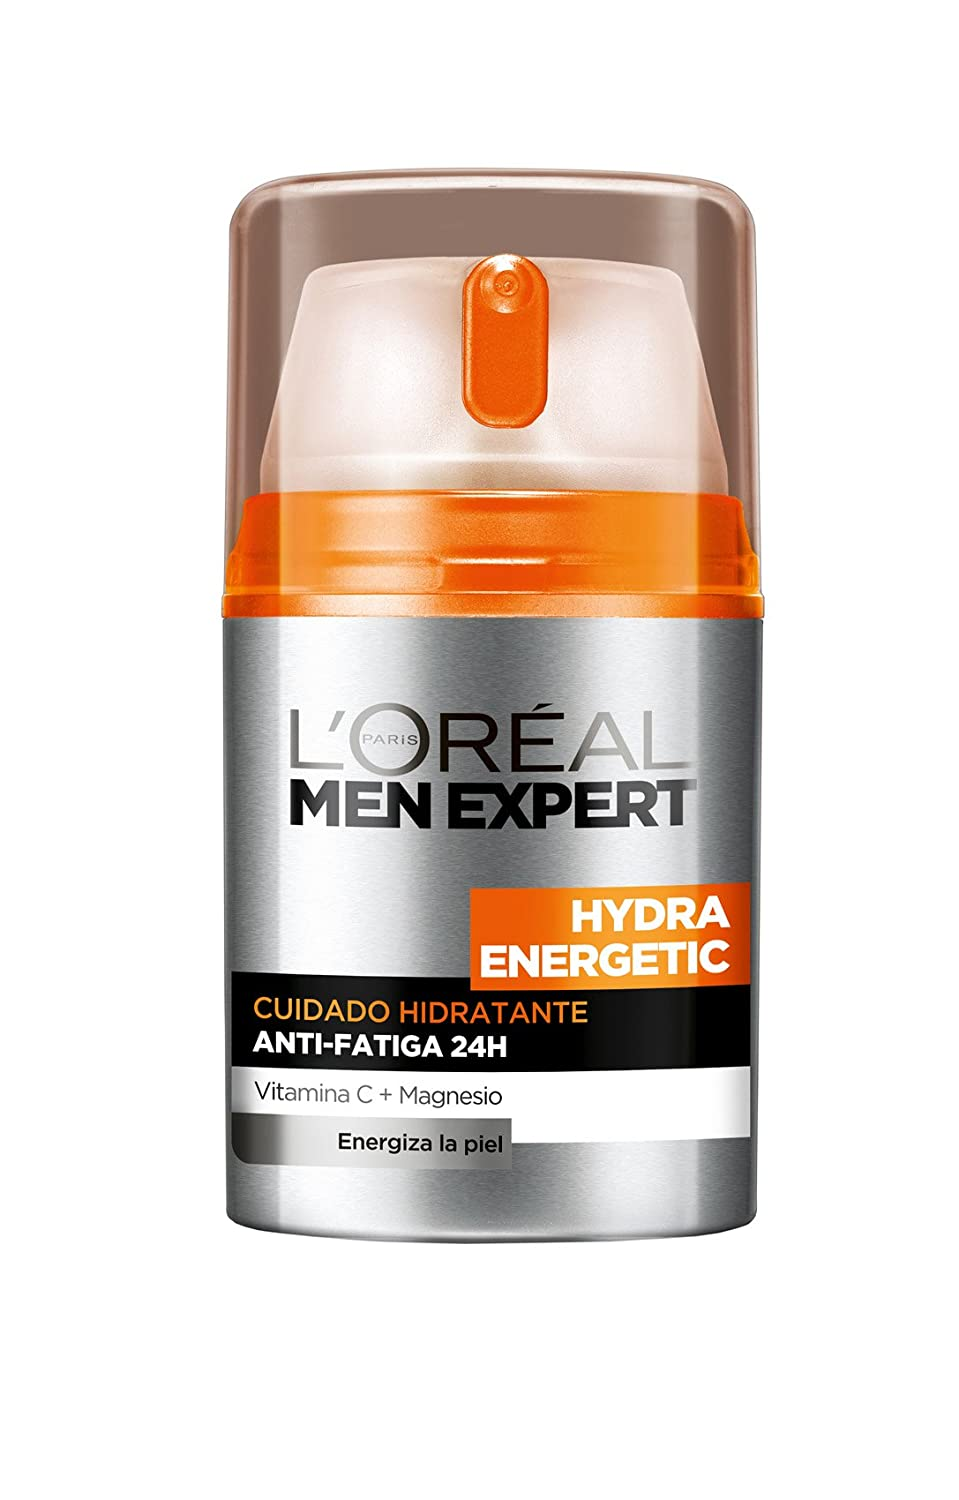 LOréal Paris Men Expert 24H Hydra Energetic Dado Hidratante Anti-Fatiga - 50 ml: Amazon.es: Amazon Pantry